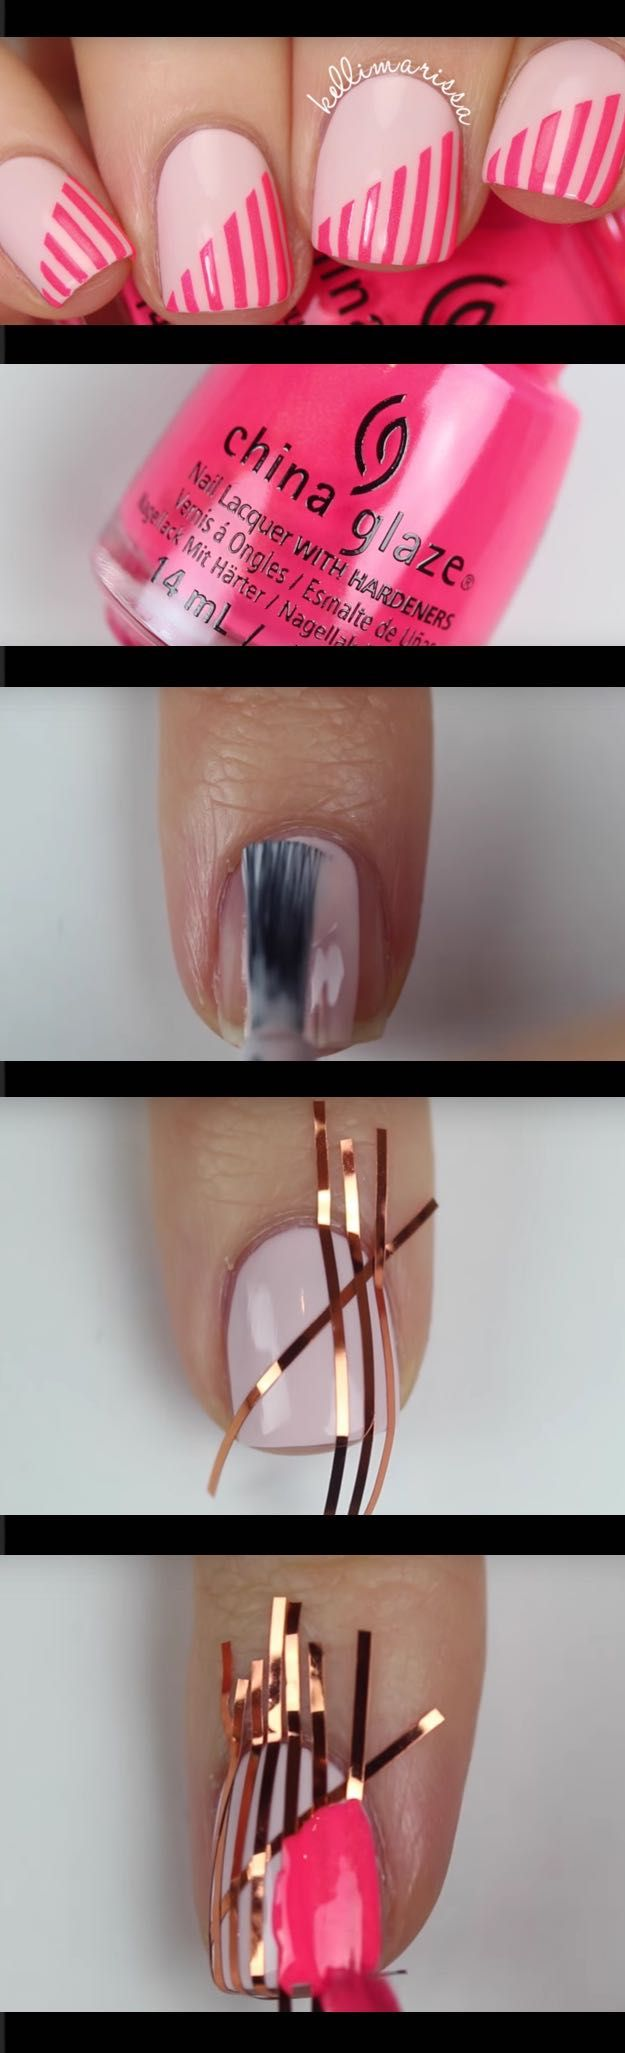 41 Super Easy Nail Art Ideas For Beginners Nagel Nagellak En